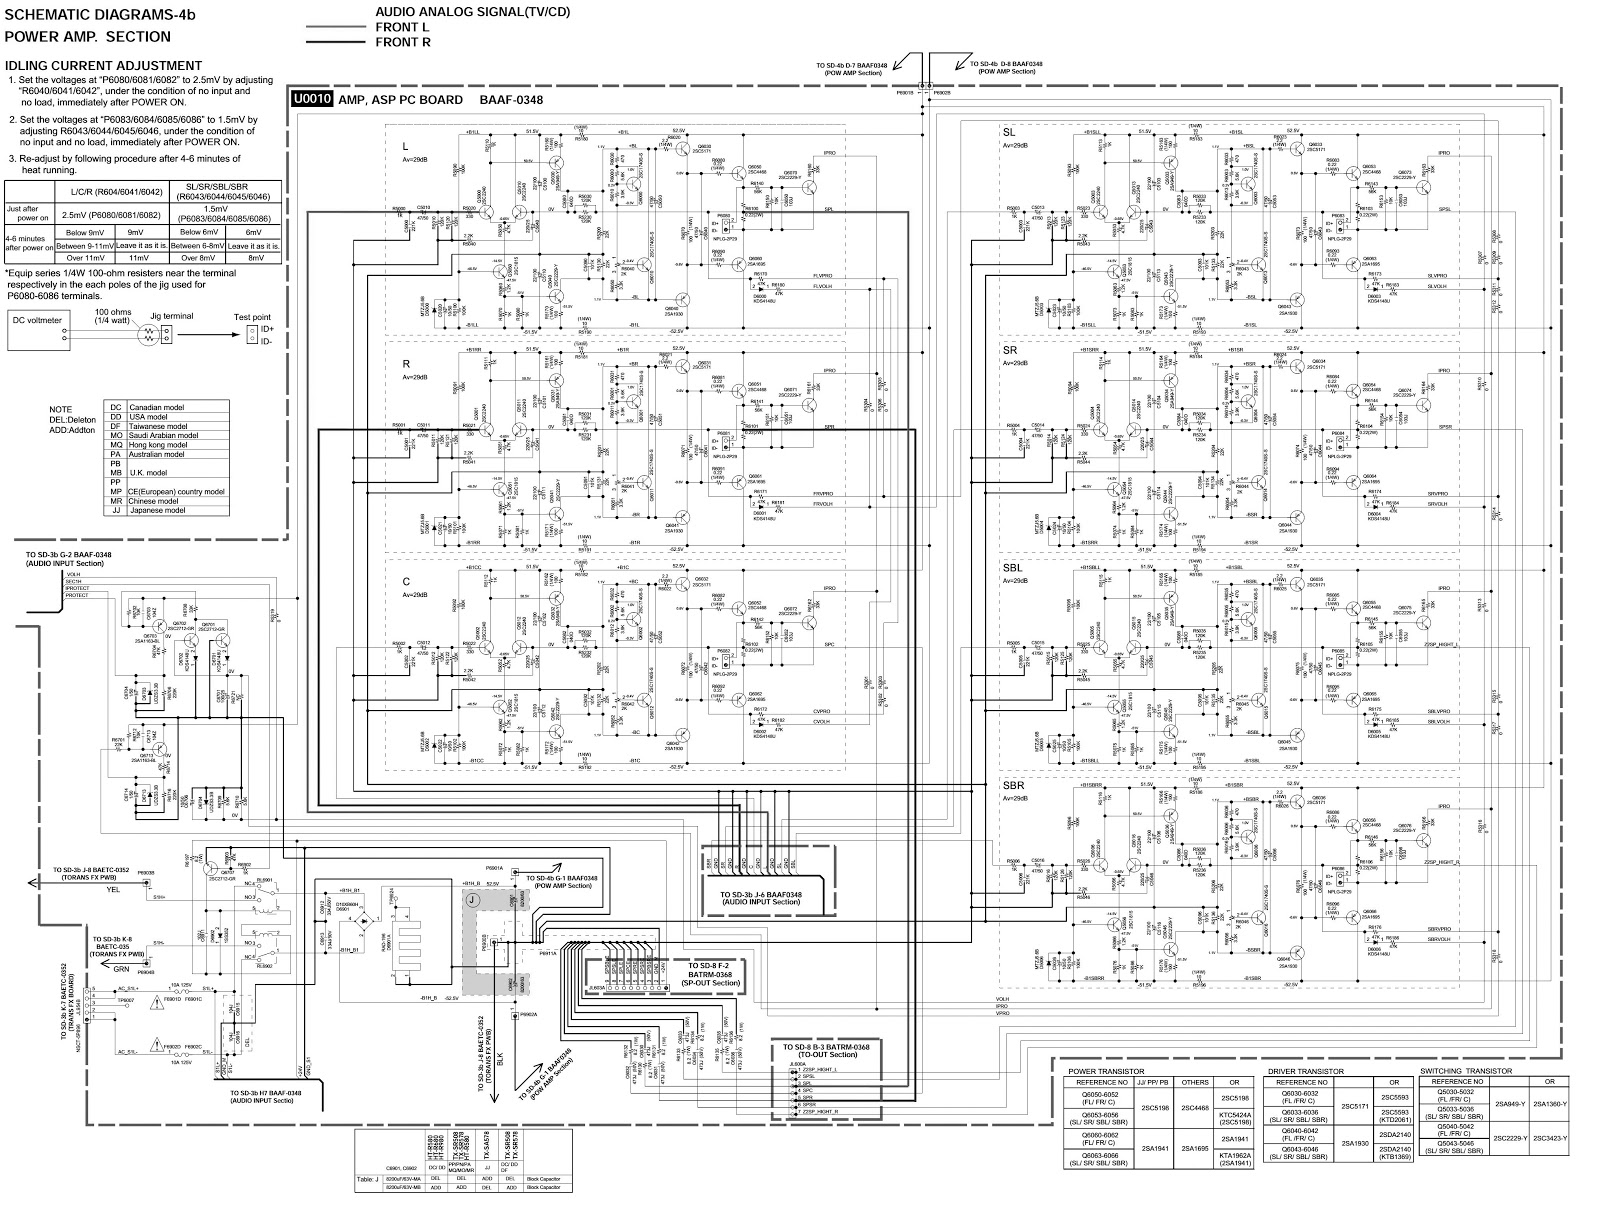 Receiver Circuit Wiring Diagram Diagrams Am Radio Using Tda 1072at Ic Schematic Onkyo 29 Images Jvc Ax R350 Integragated Amplifier Connection